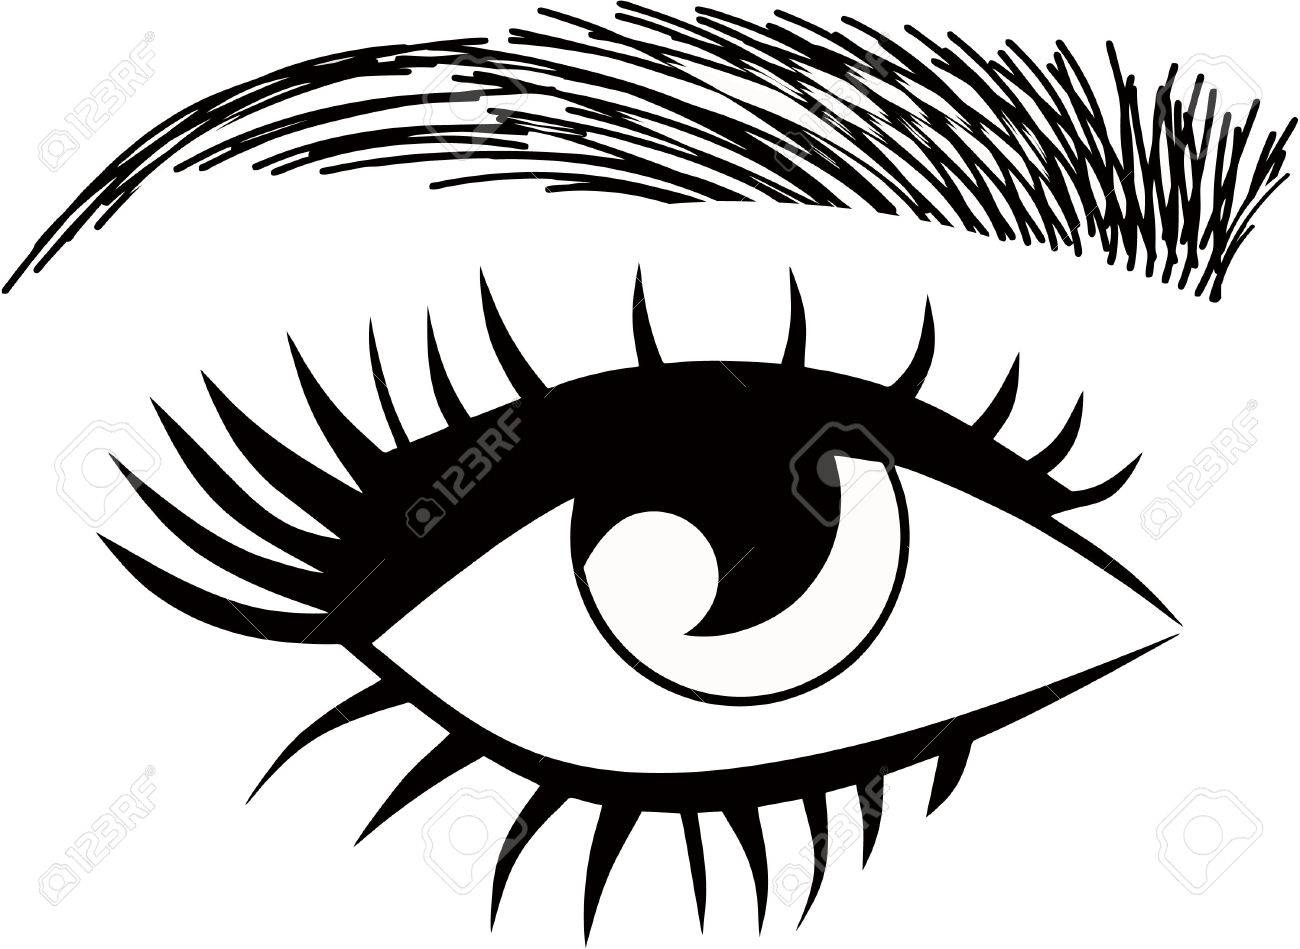 1300x949 Eyelash Extensions, Eyebrows Threading, Eyes Open Closed Royalty